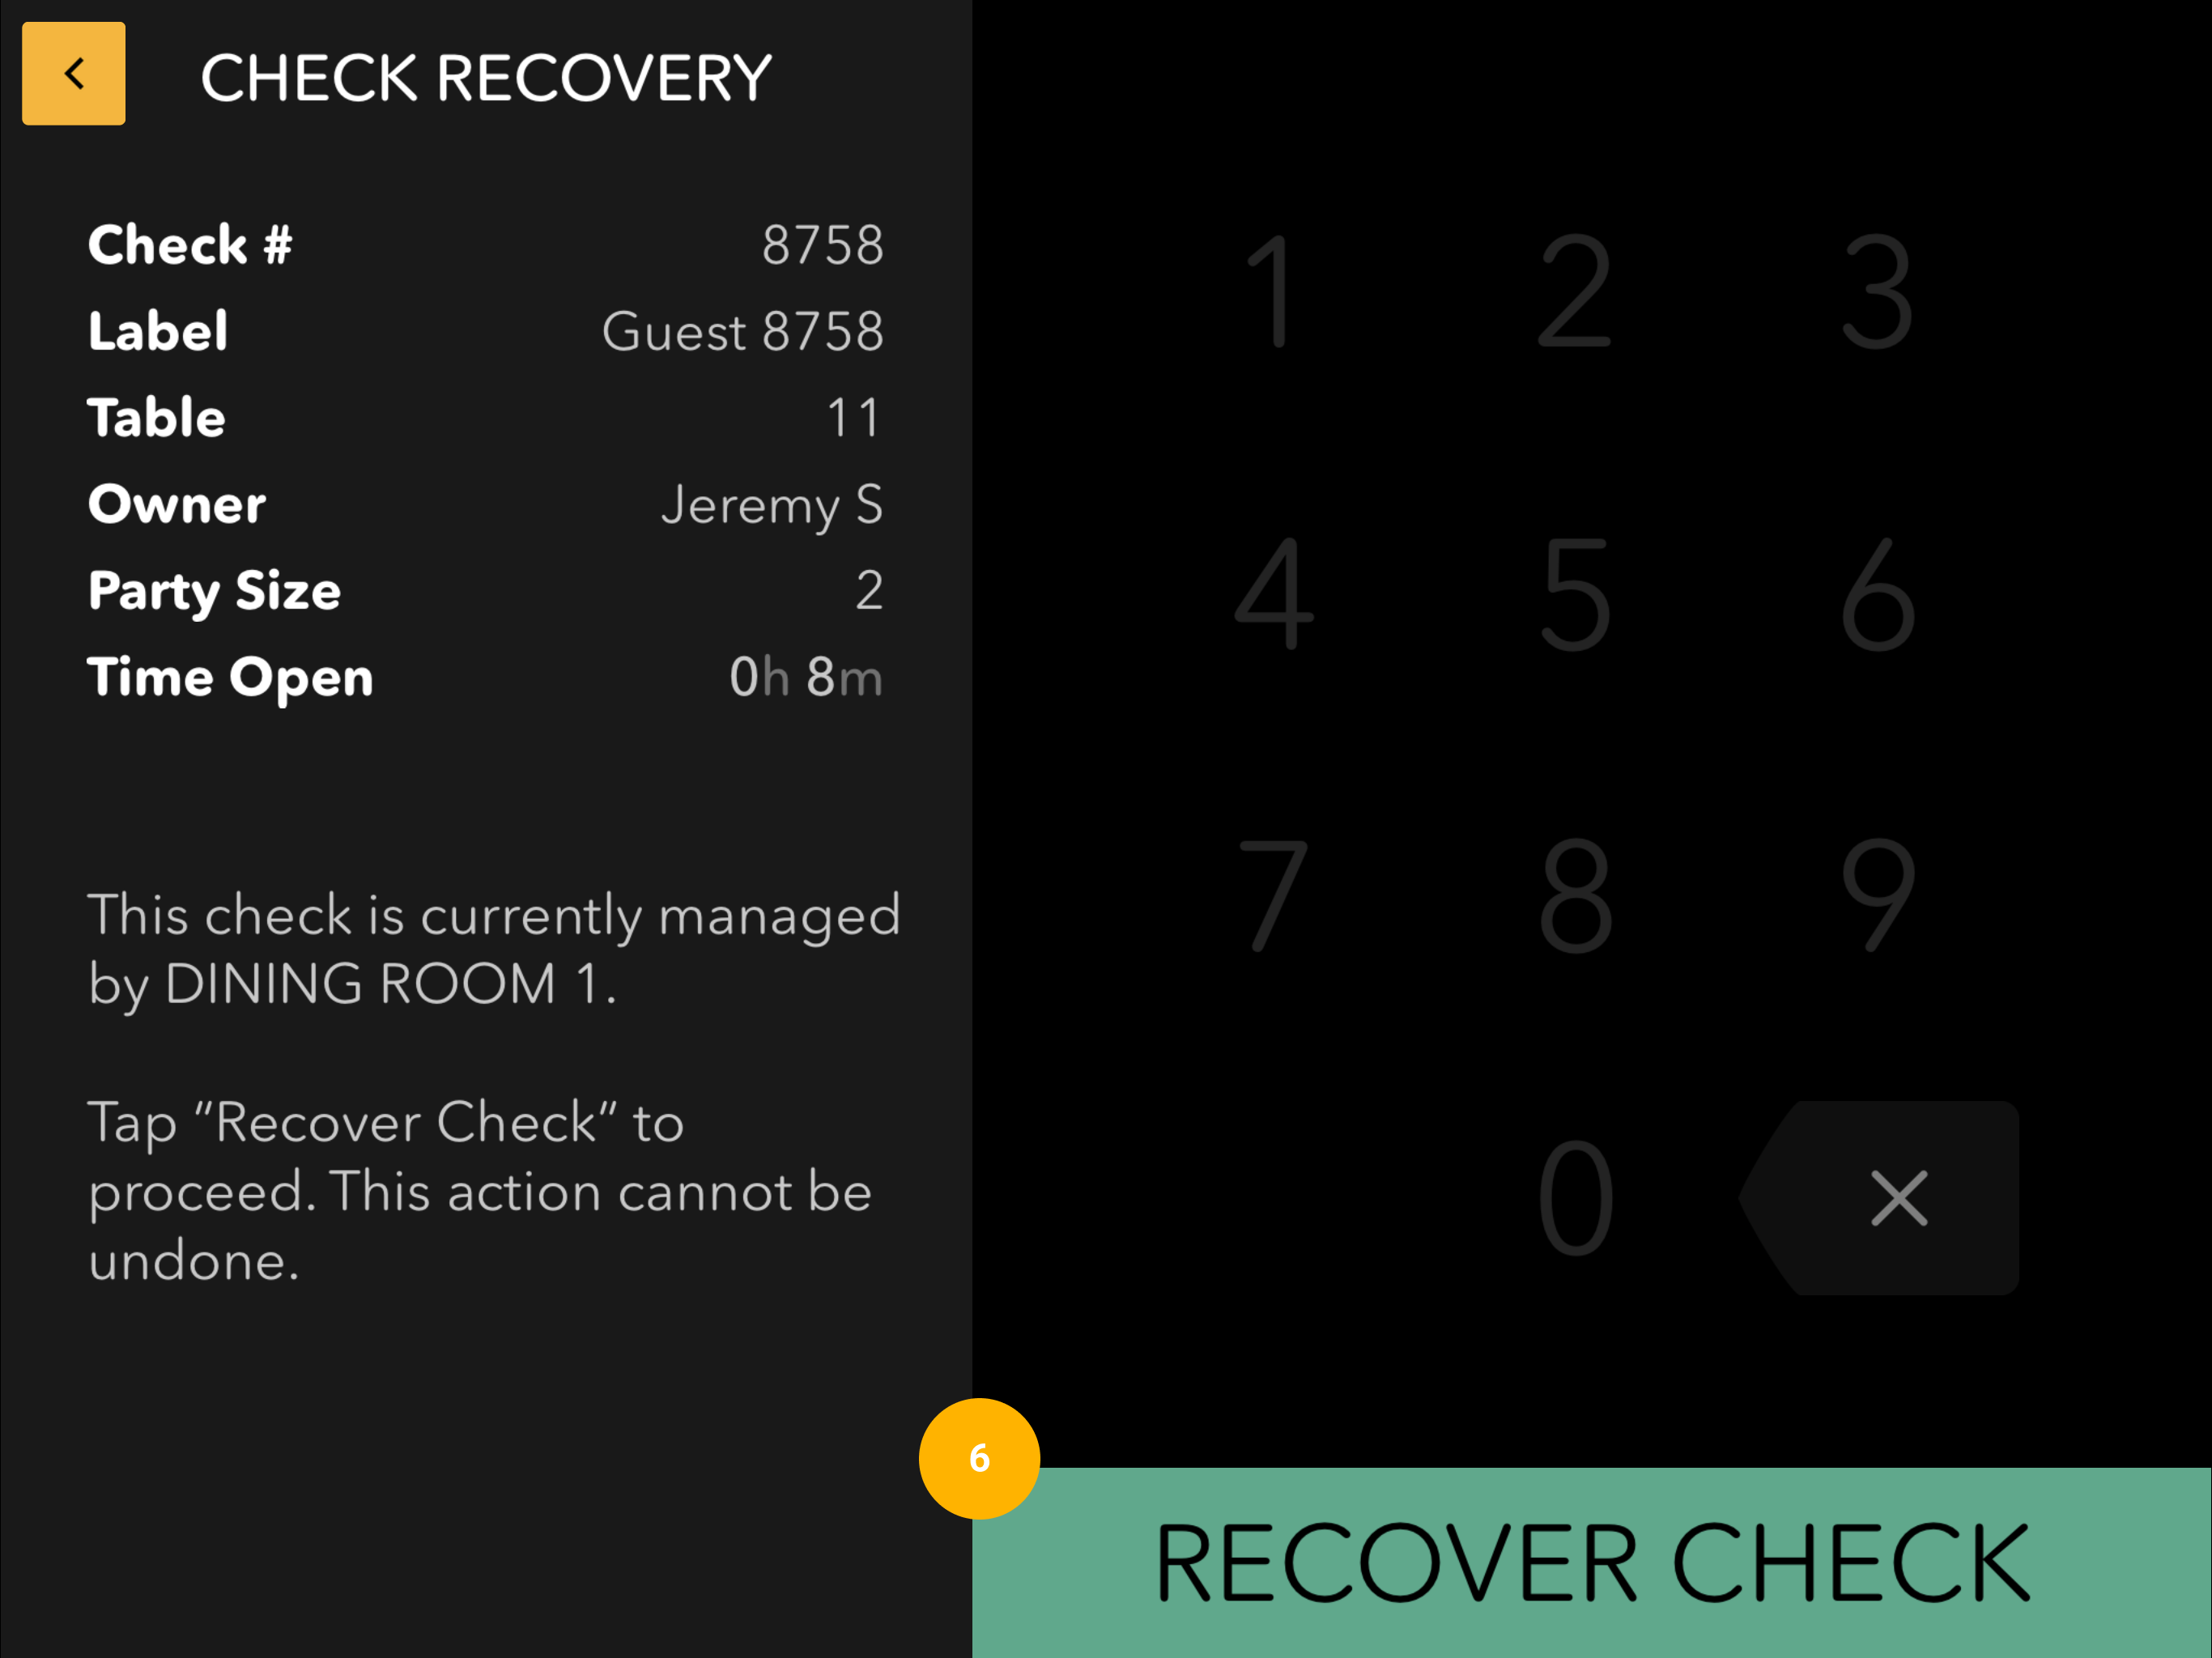 006_Check_Recovery.png